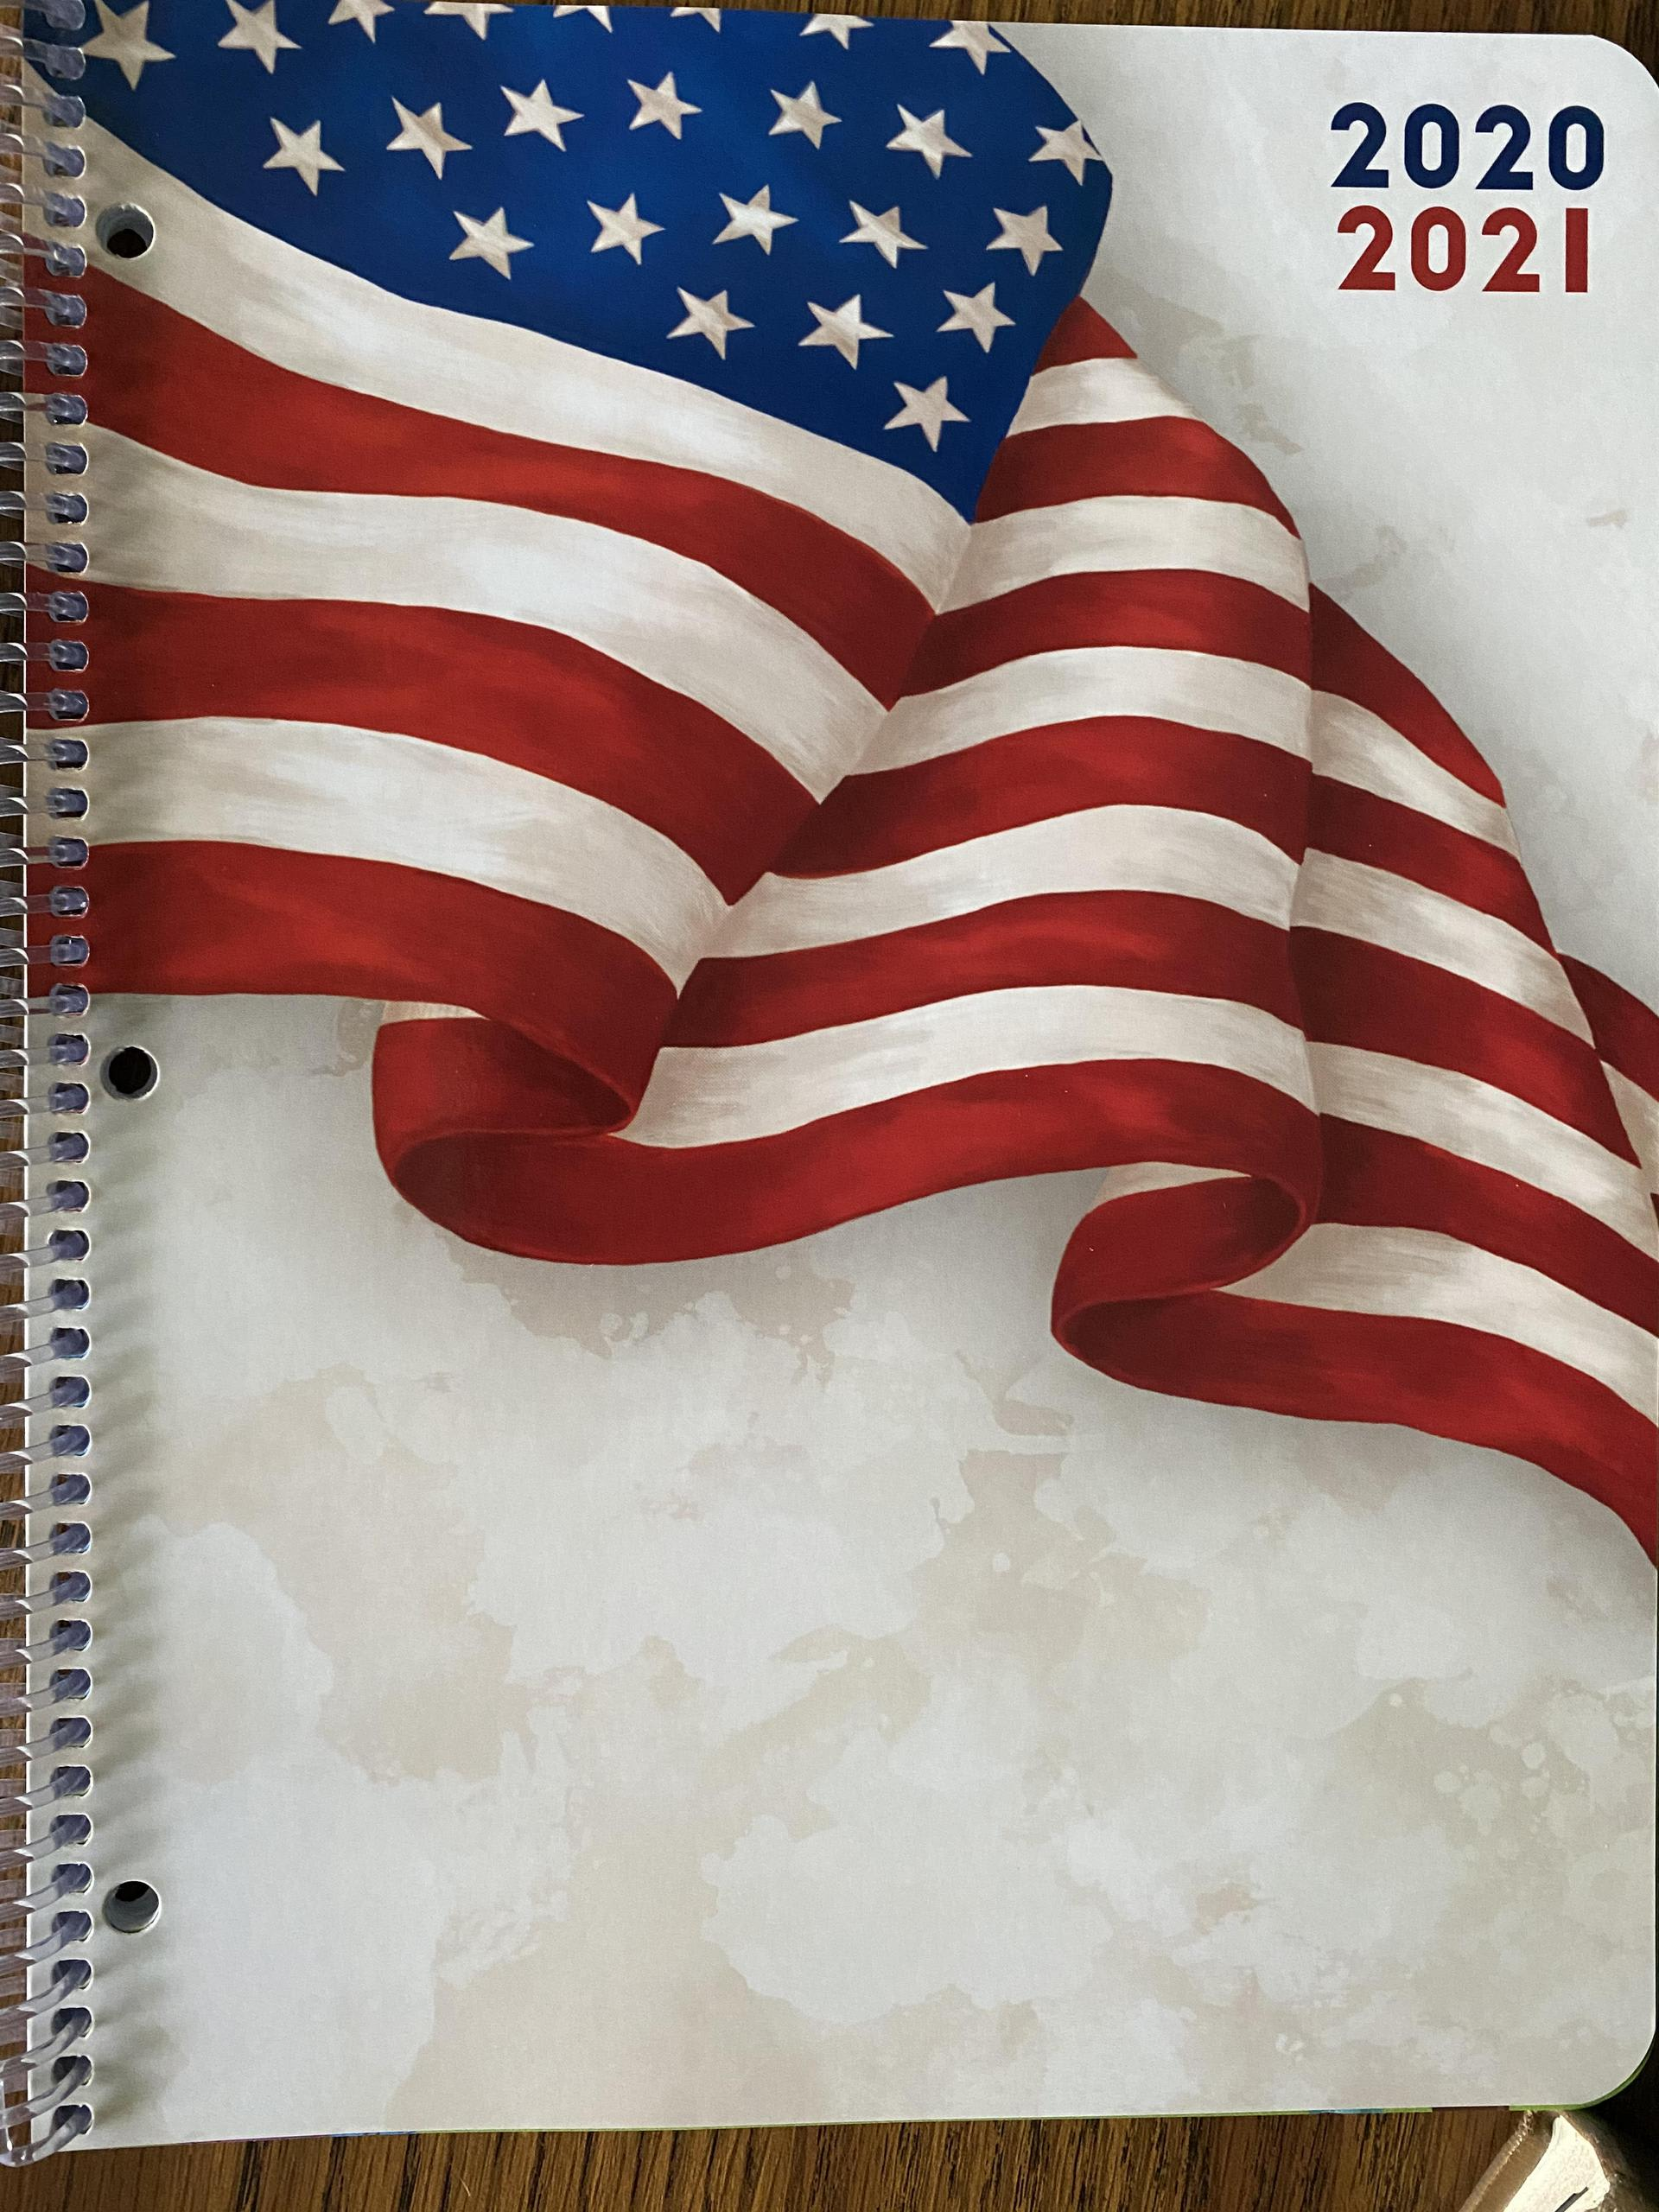 Picture of the cover of a Study Buddy with an American flag 2020-2021